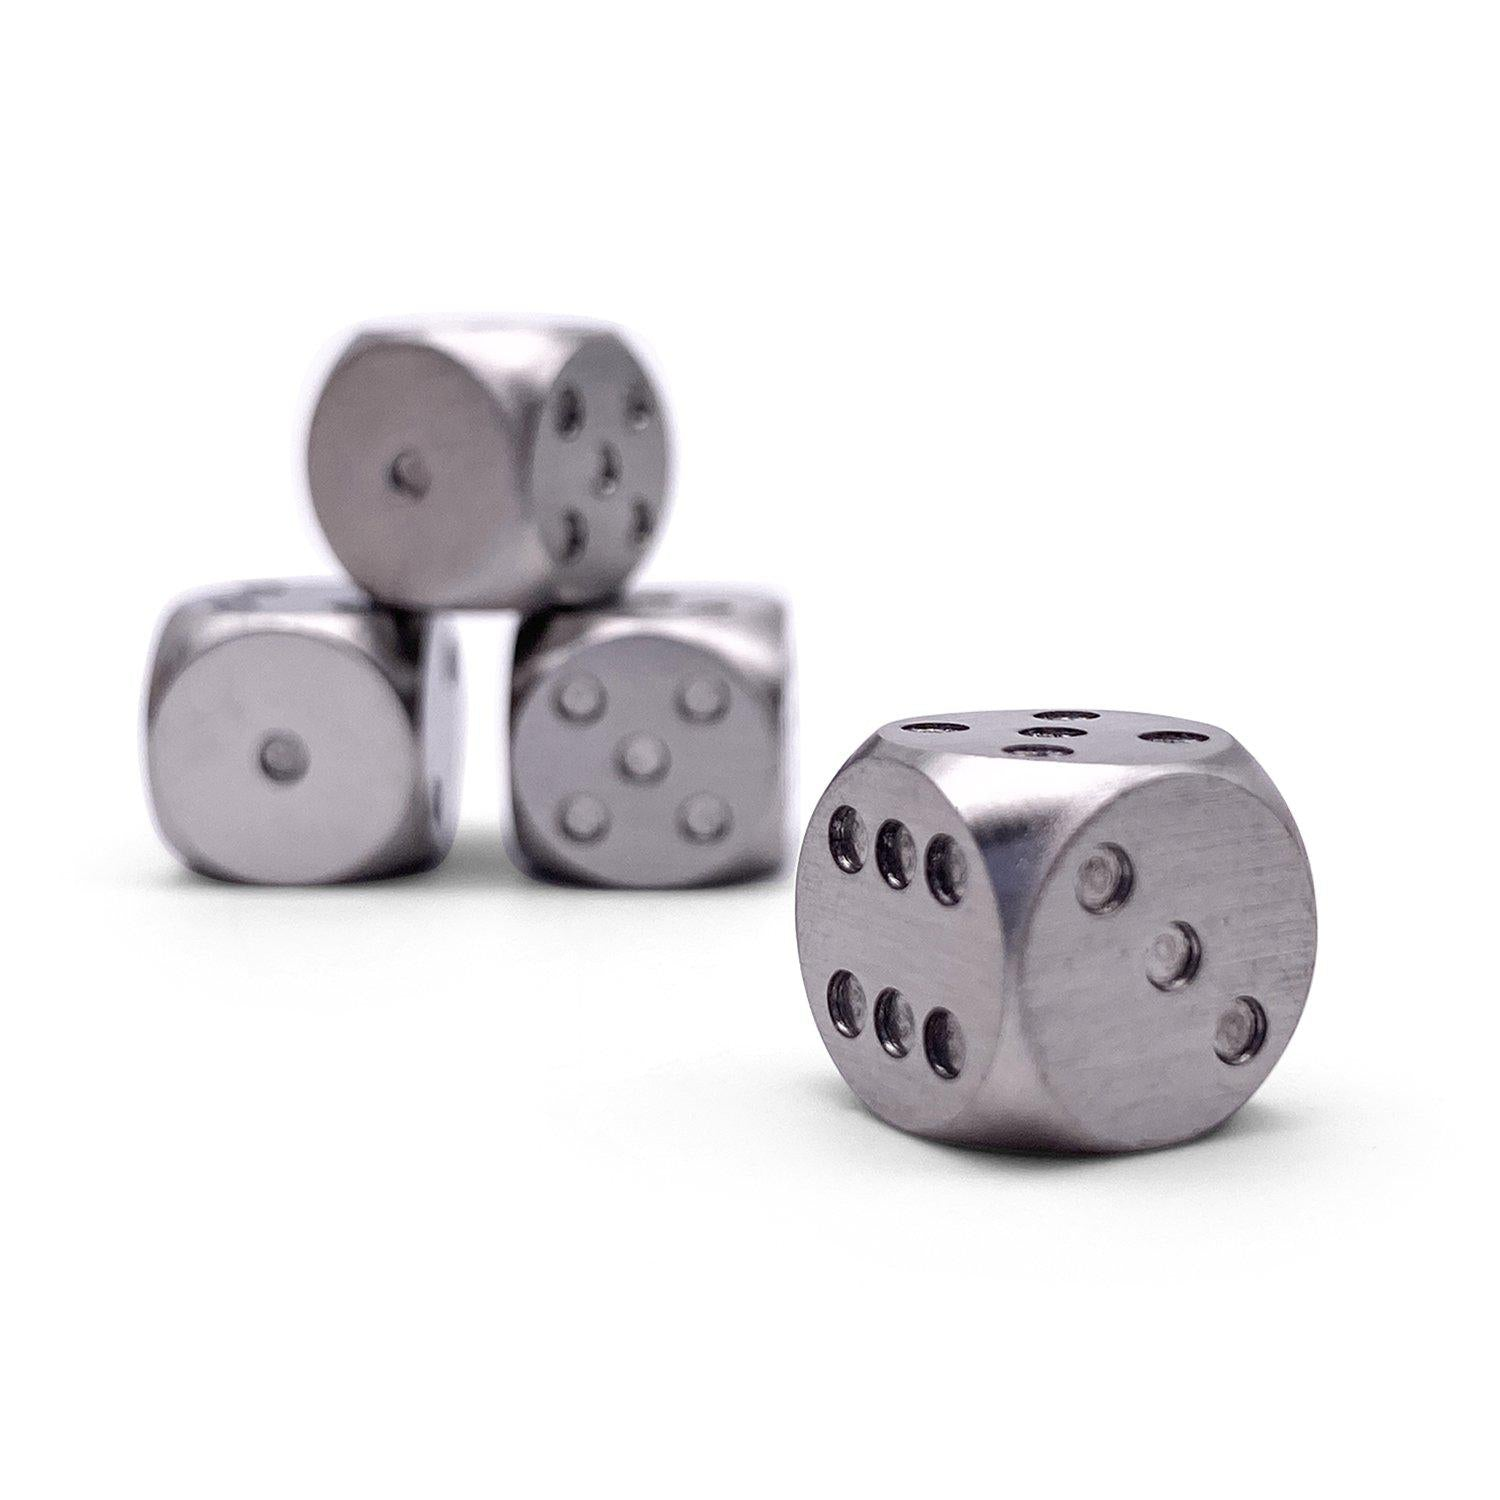 Stainless Steel D6 - Pips Dice